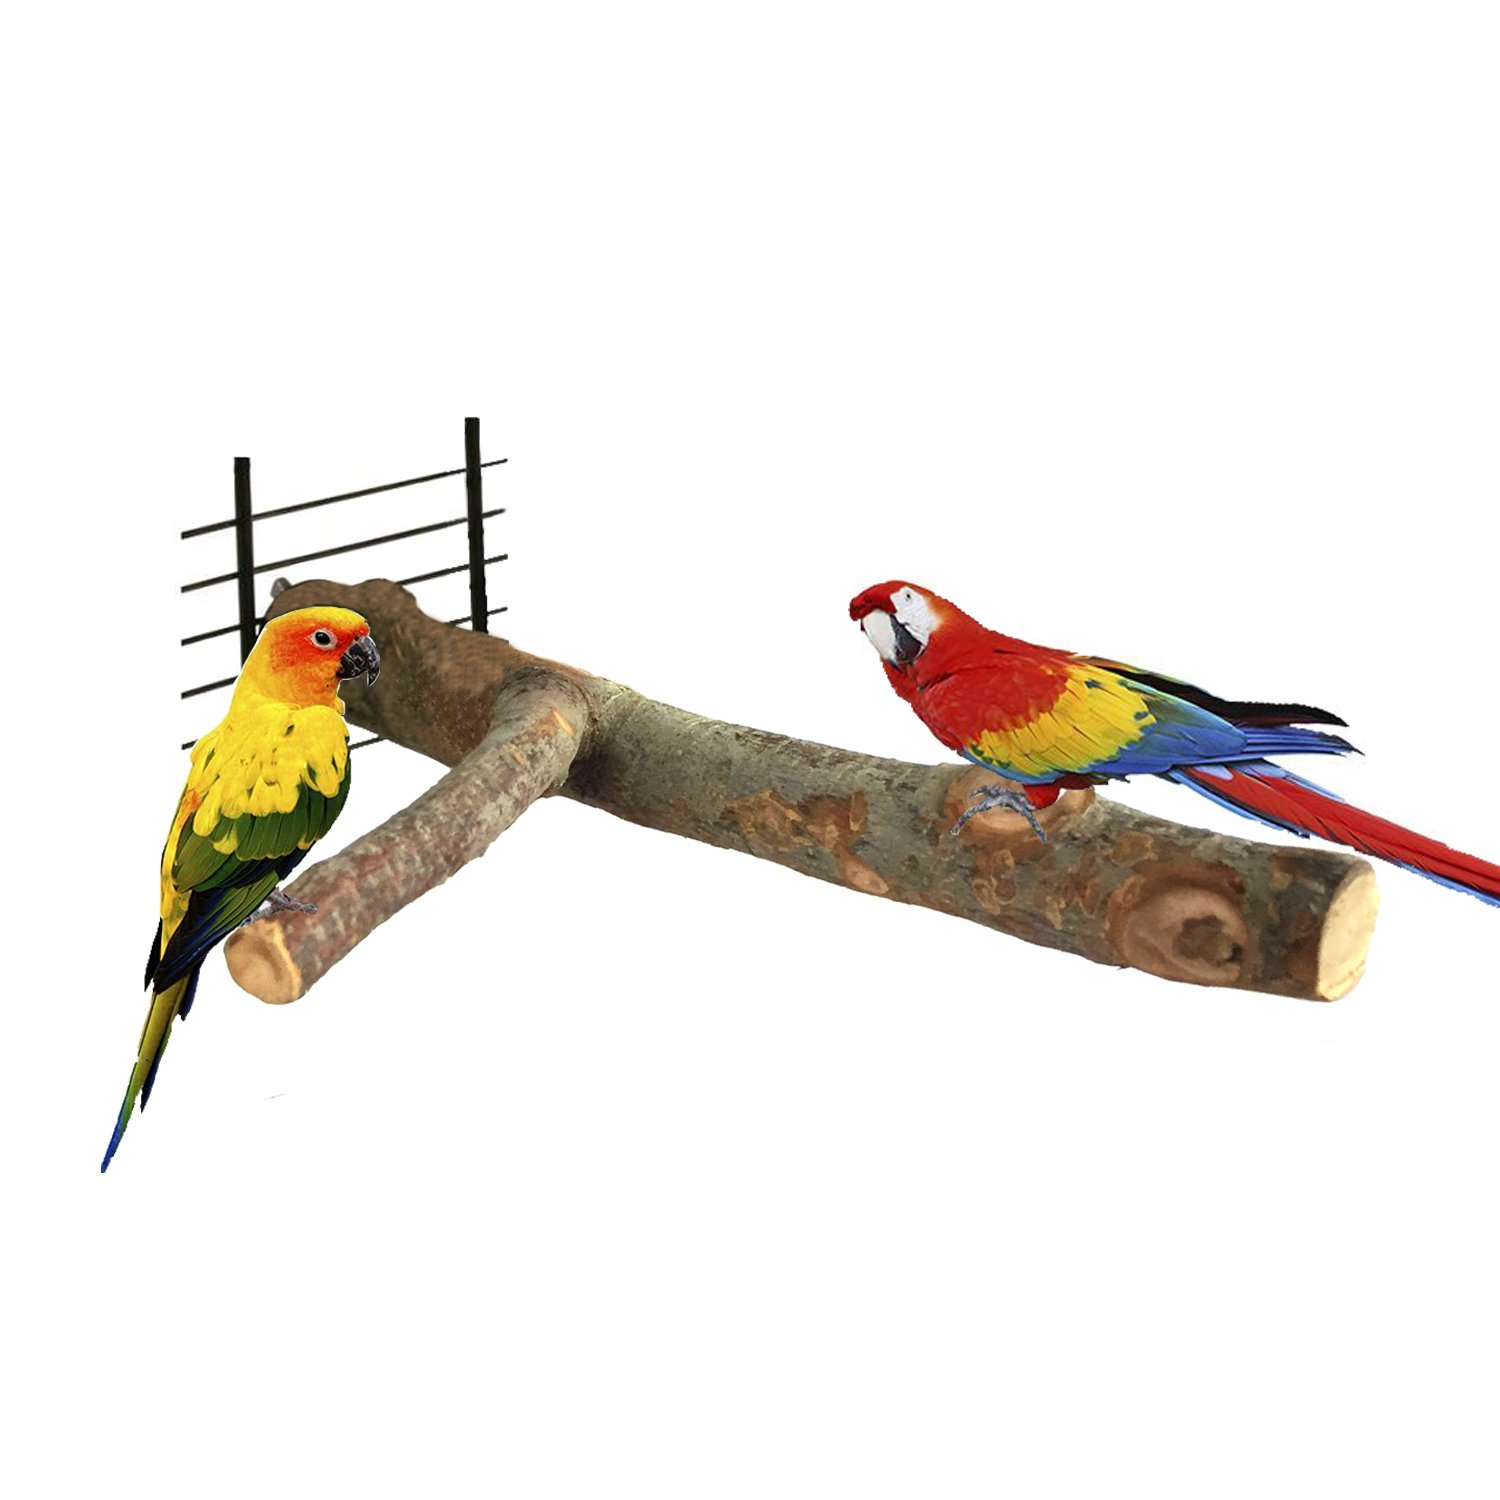 Bwogue Bird Perch,Nature Apple Wood Stand Toy Branch For Parrots Cages Toy